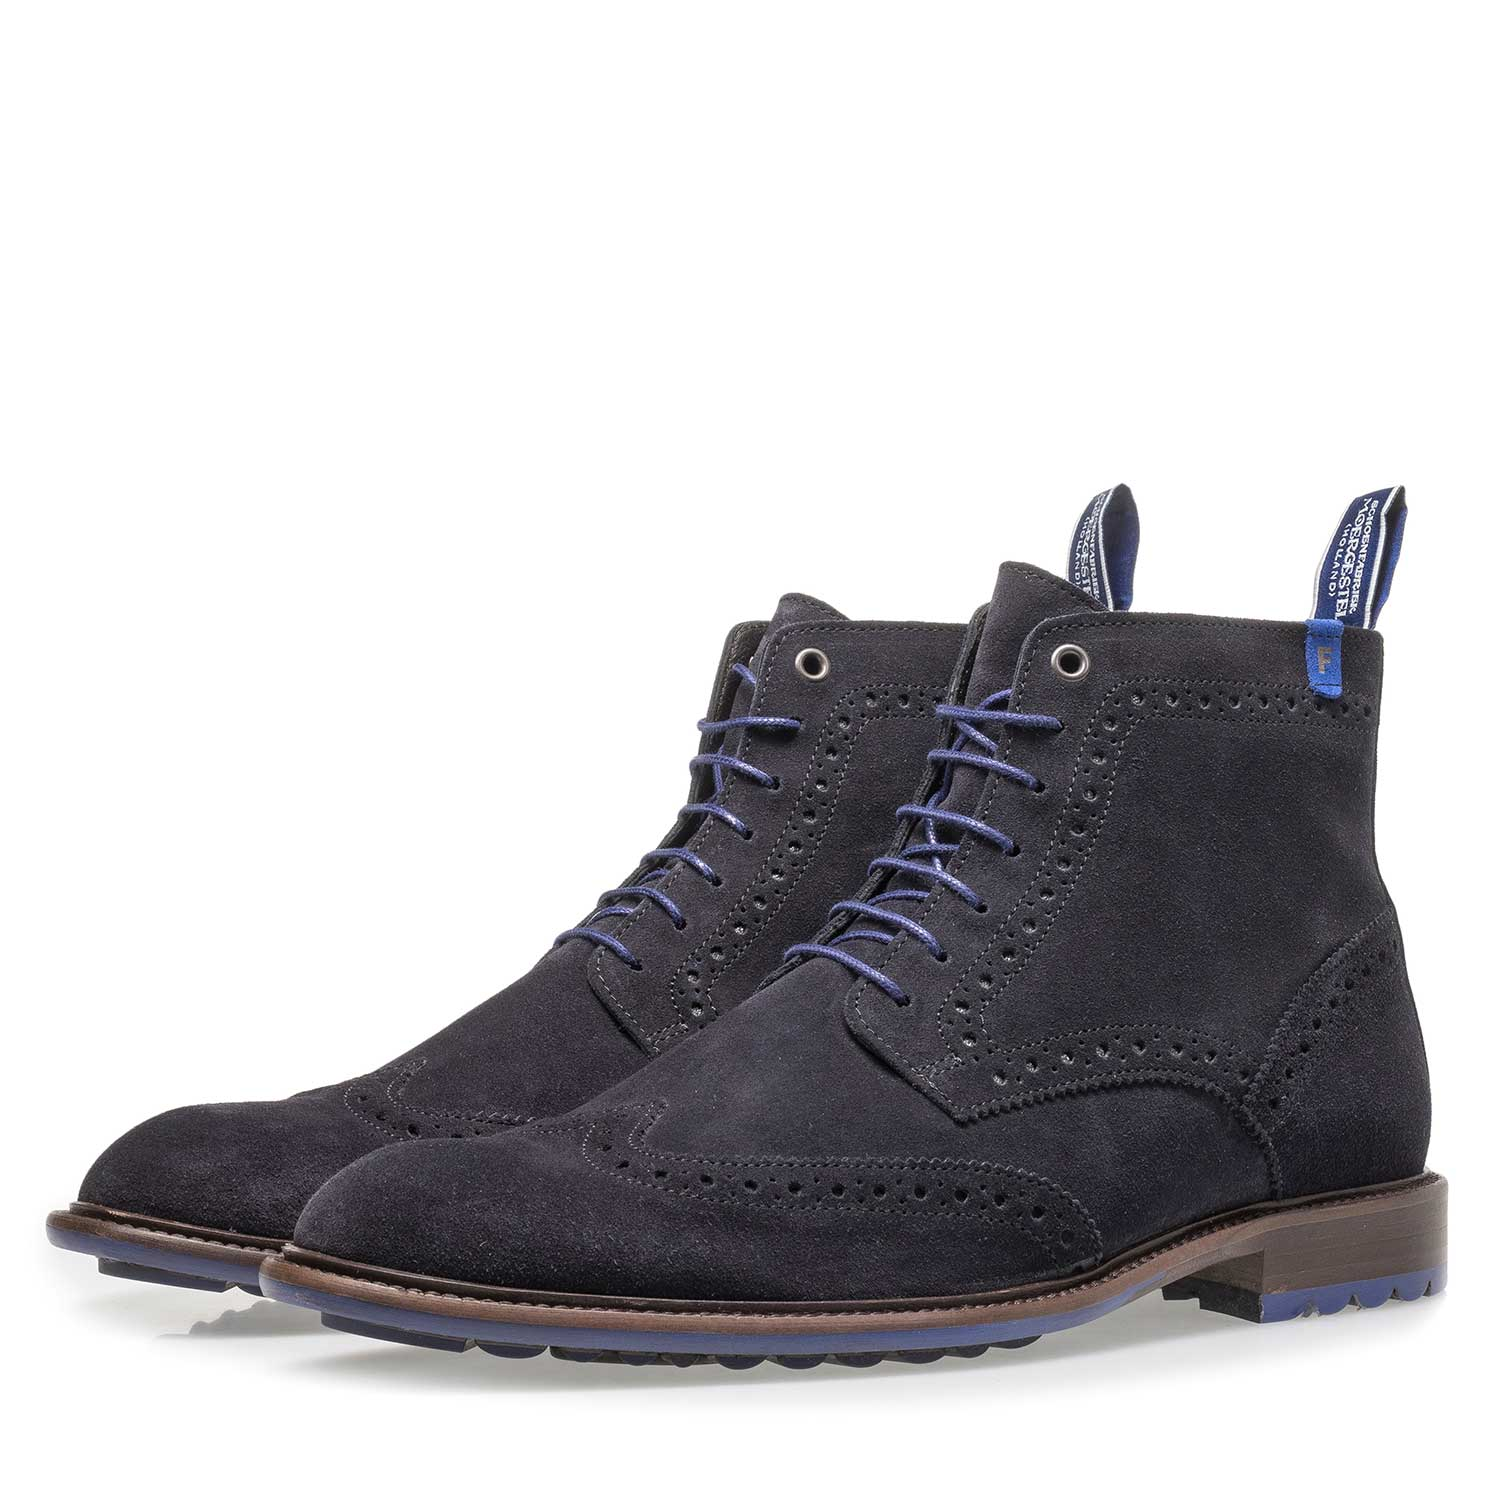 10506/15 - Dark blue calf suede lace boot